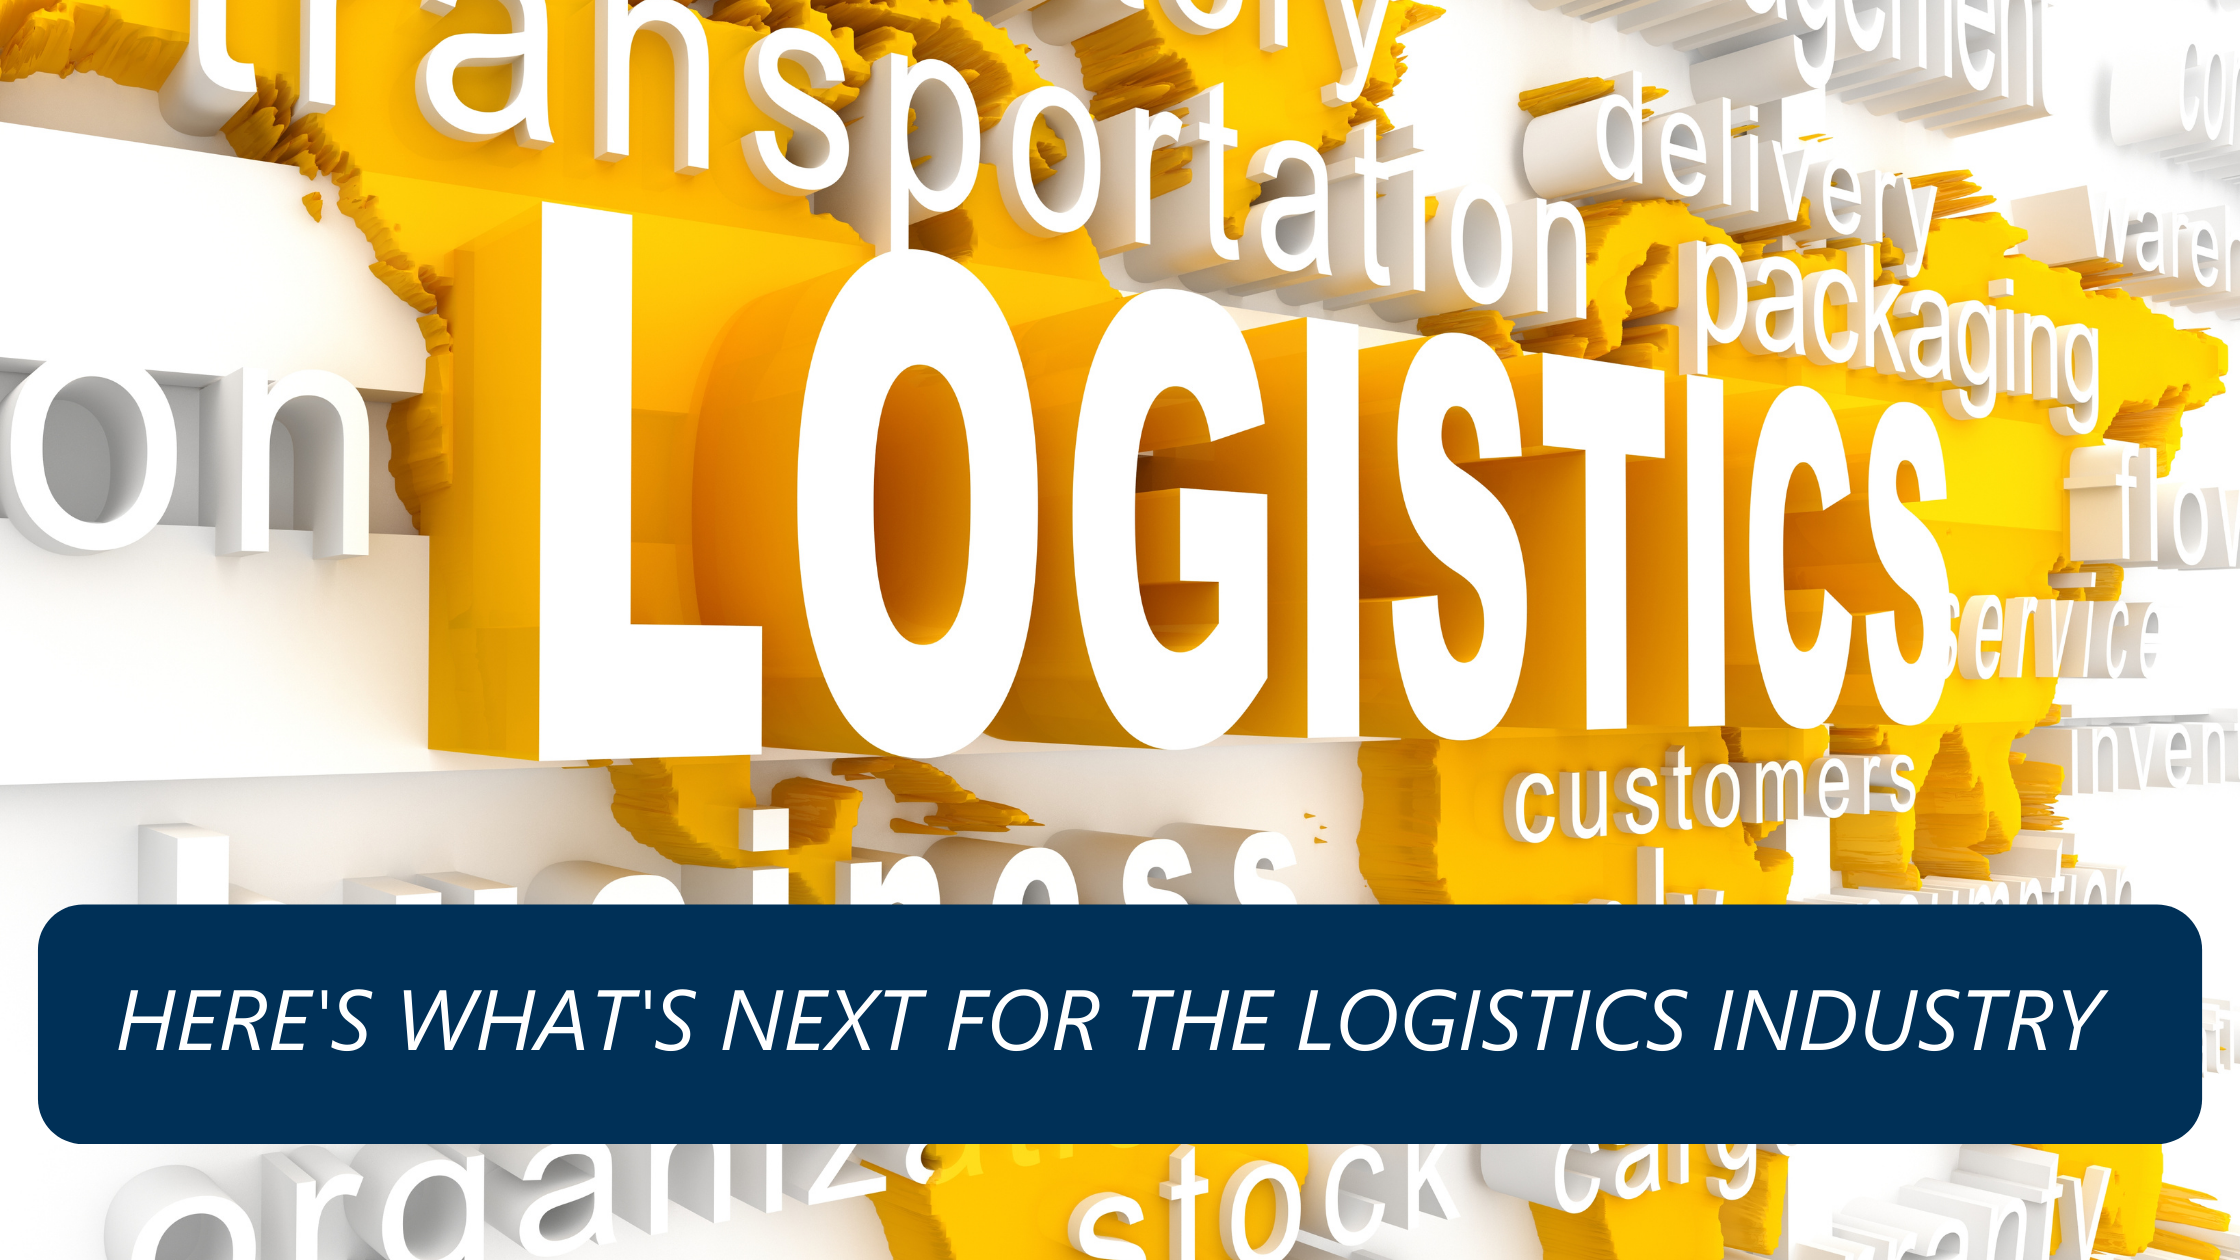 HERES WHATS NEXT FOR THE LOGISTICS INDUSTRY